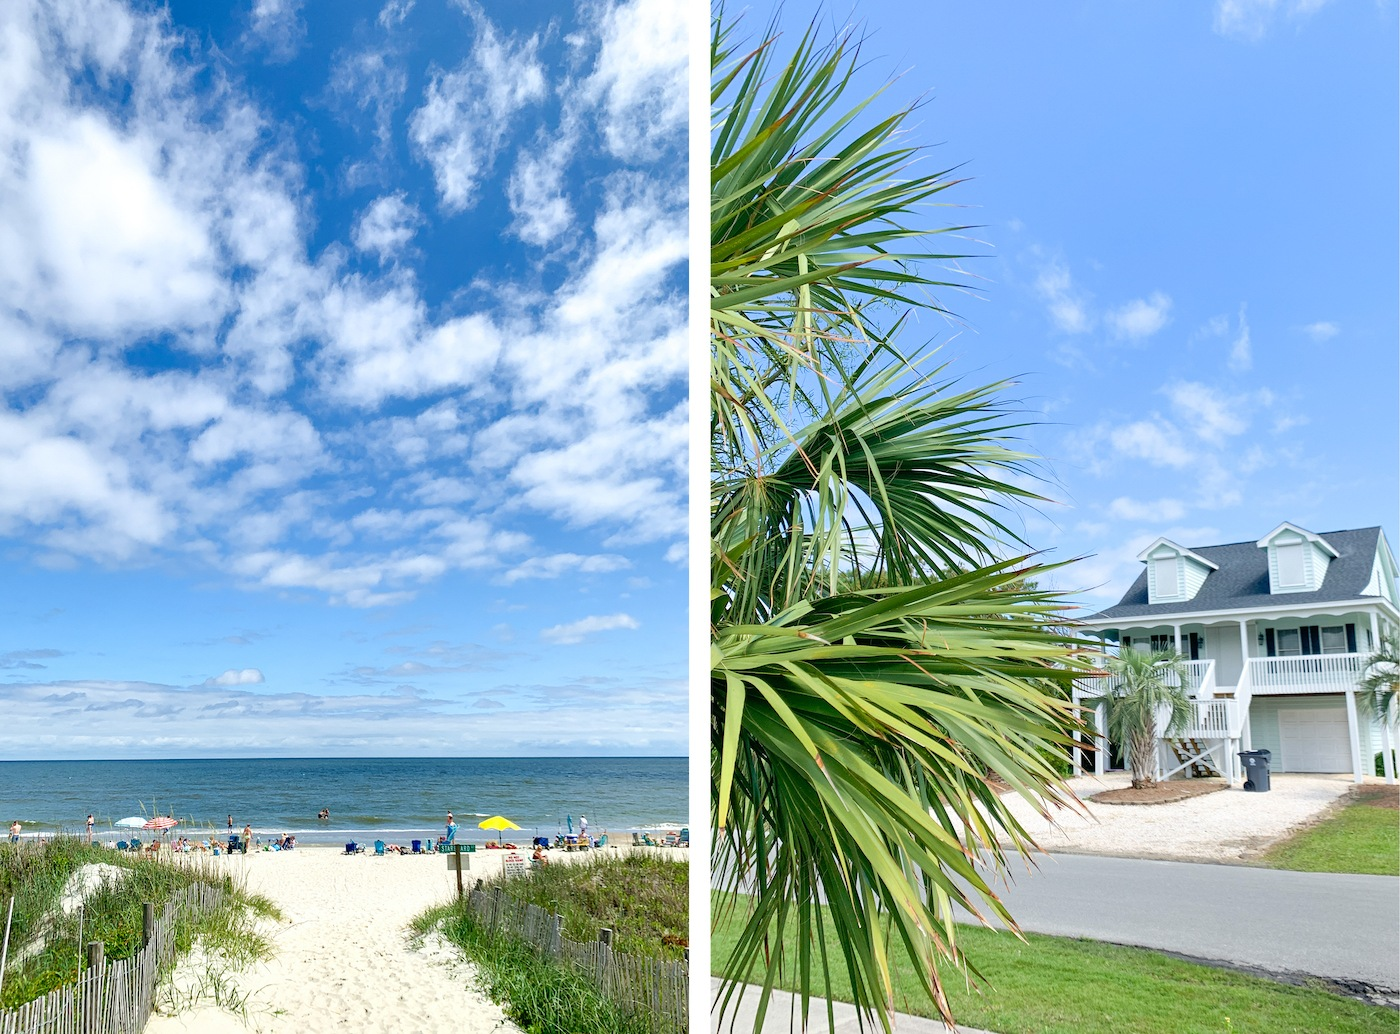 ocean isle beach north carolina travel guide